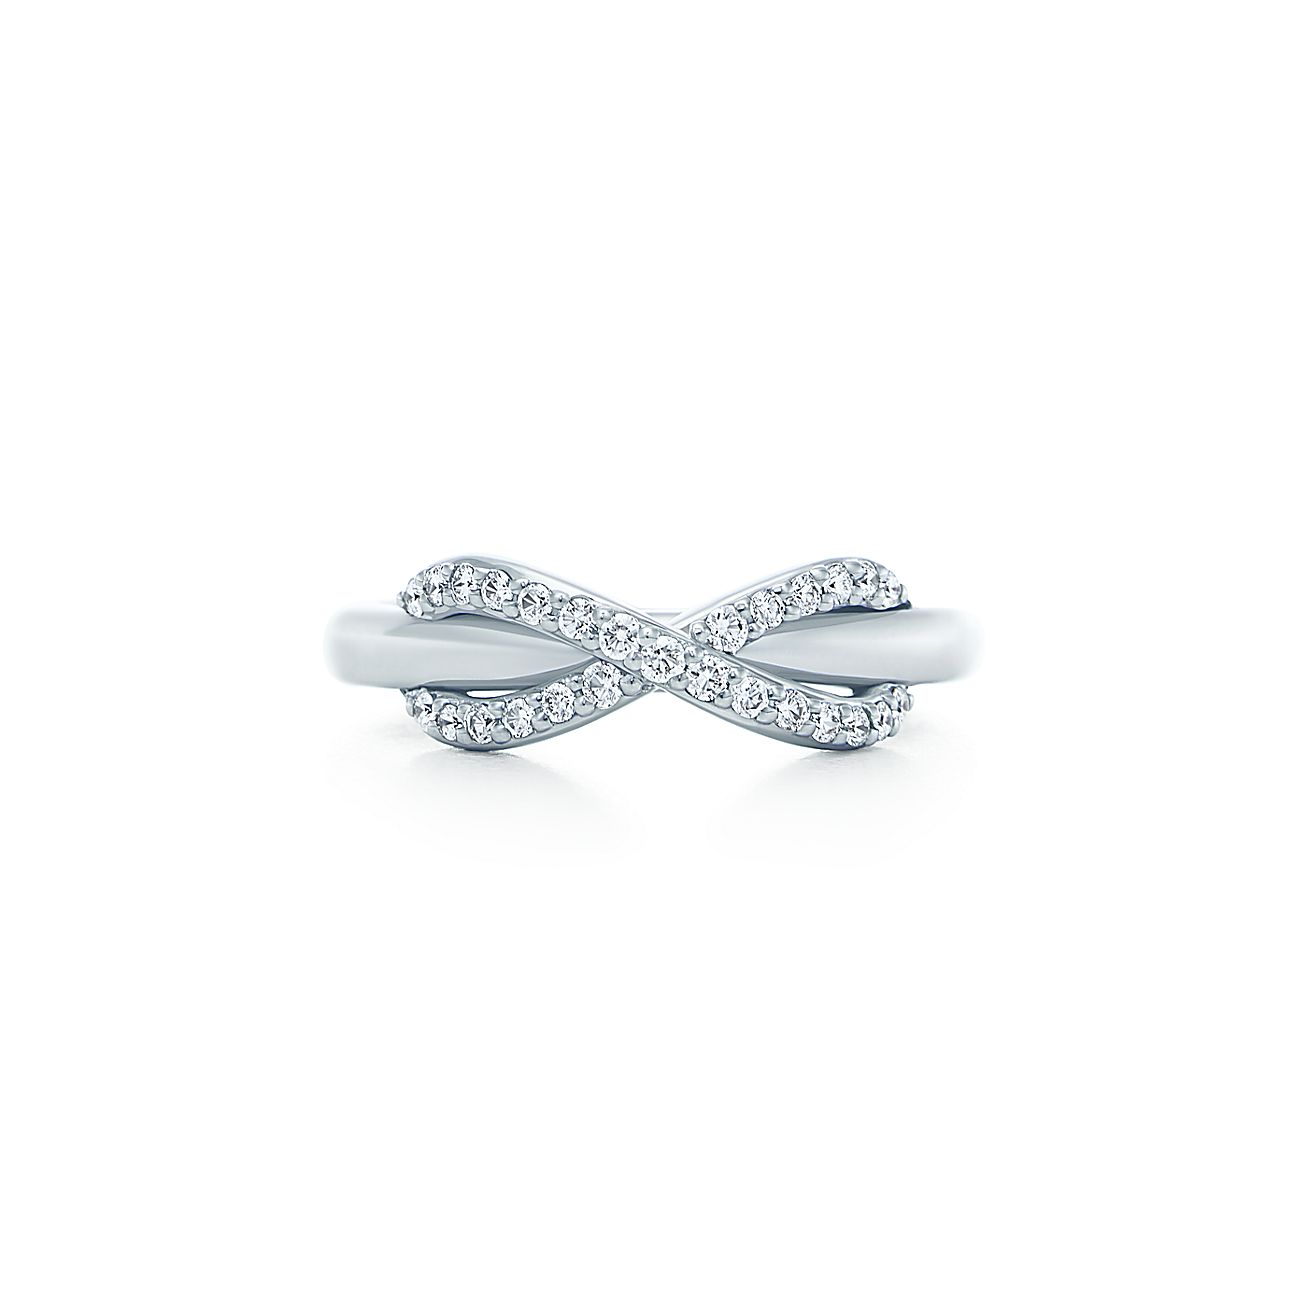 Tiffany infinity 18k white gold ring with diamonds for Infinity ring jewelry store